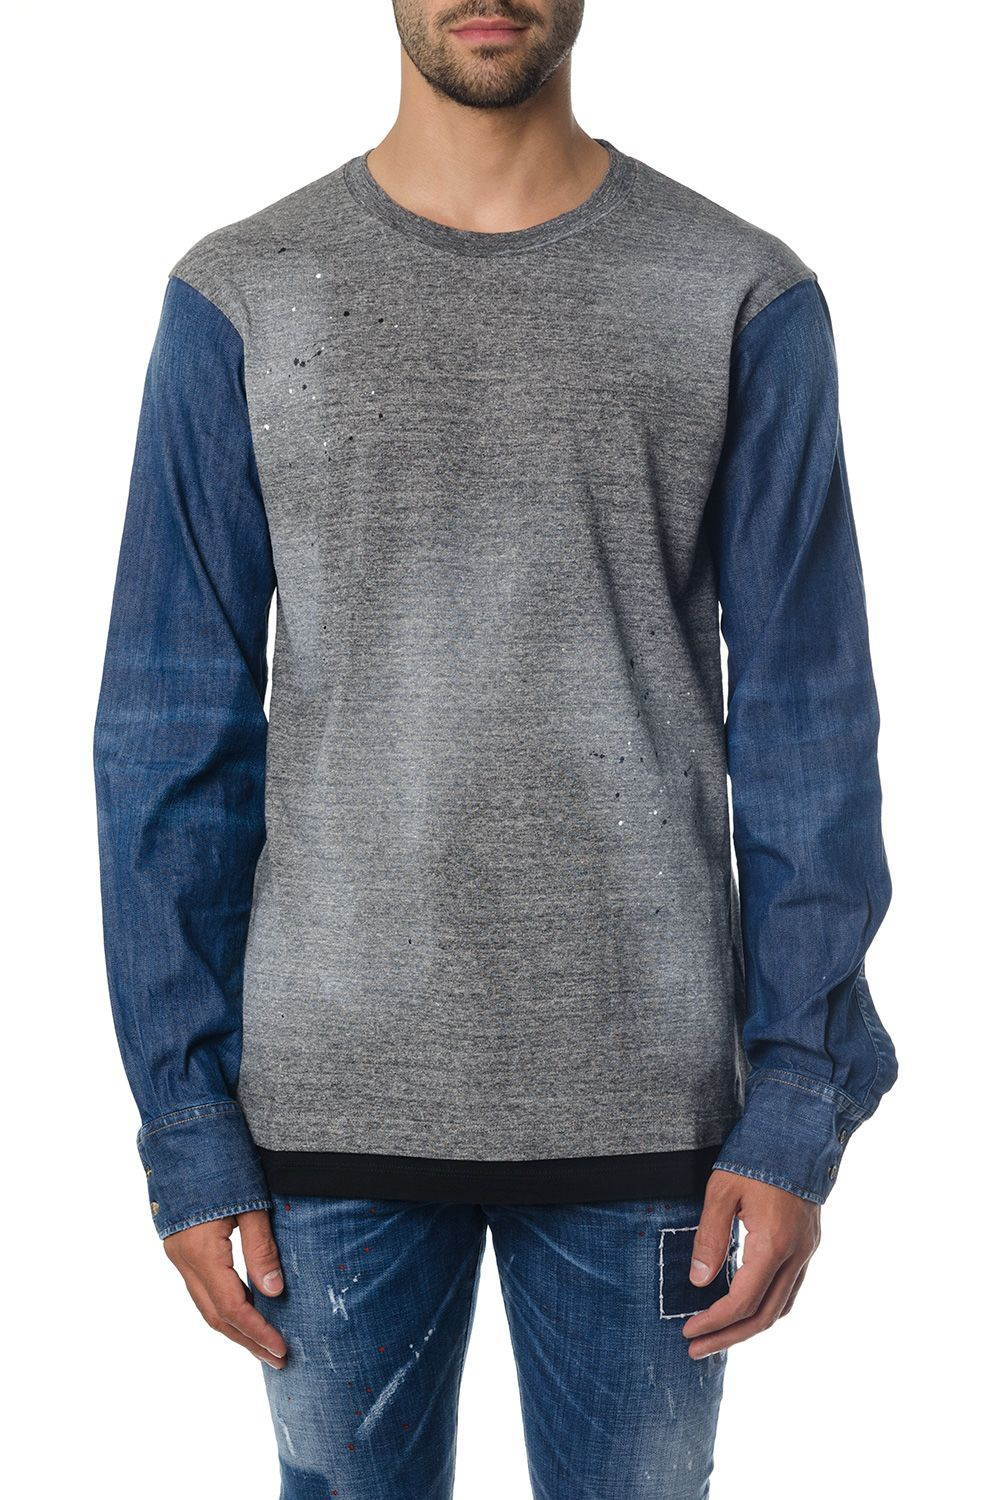 Dsquared2 Bicolor Long Sleeves T-shirt In Cotton